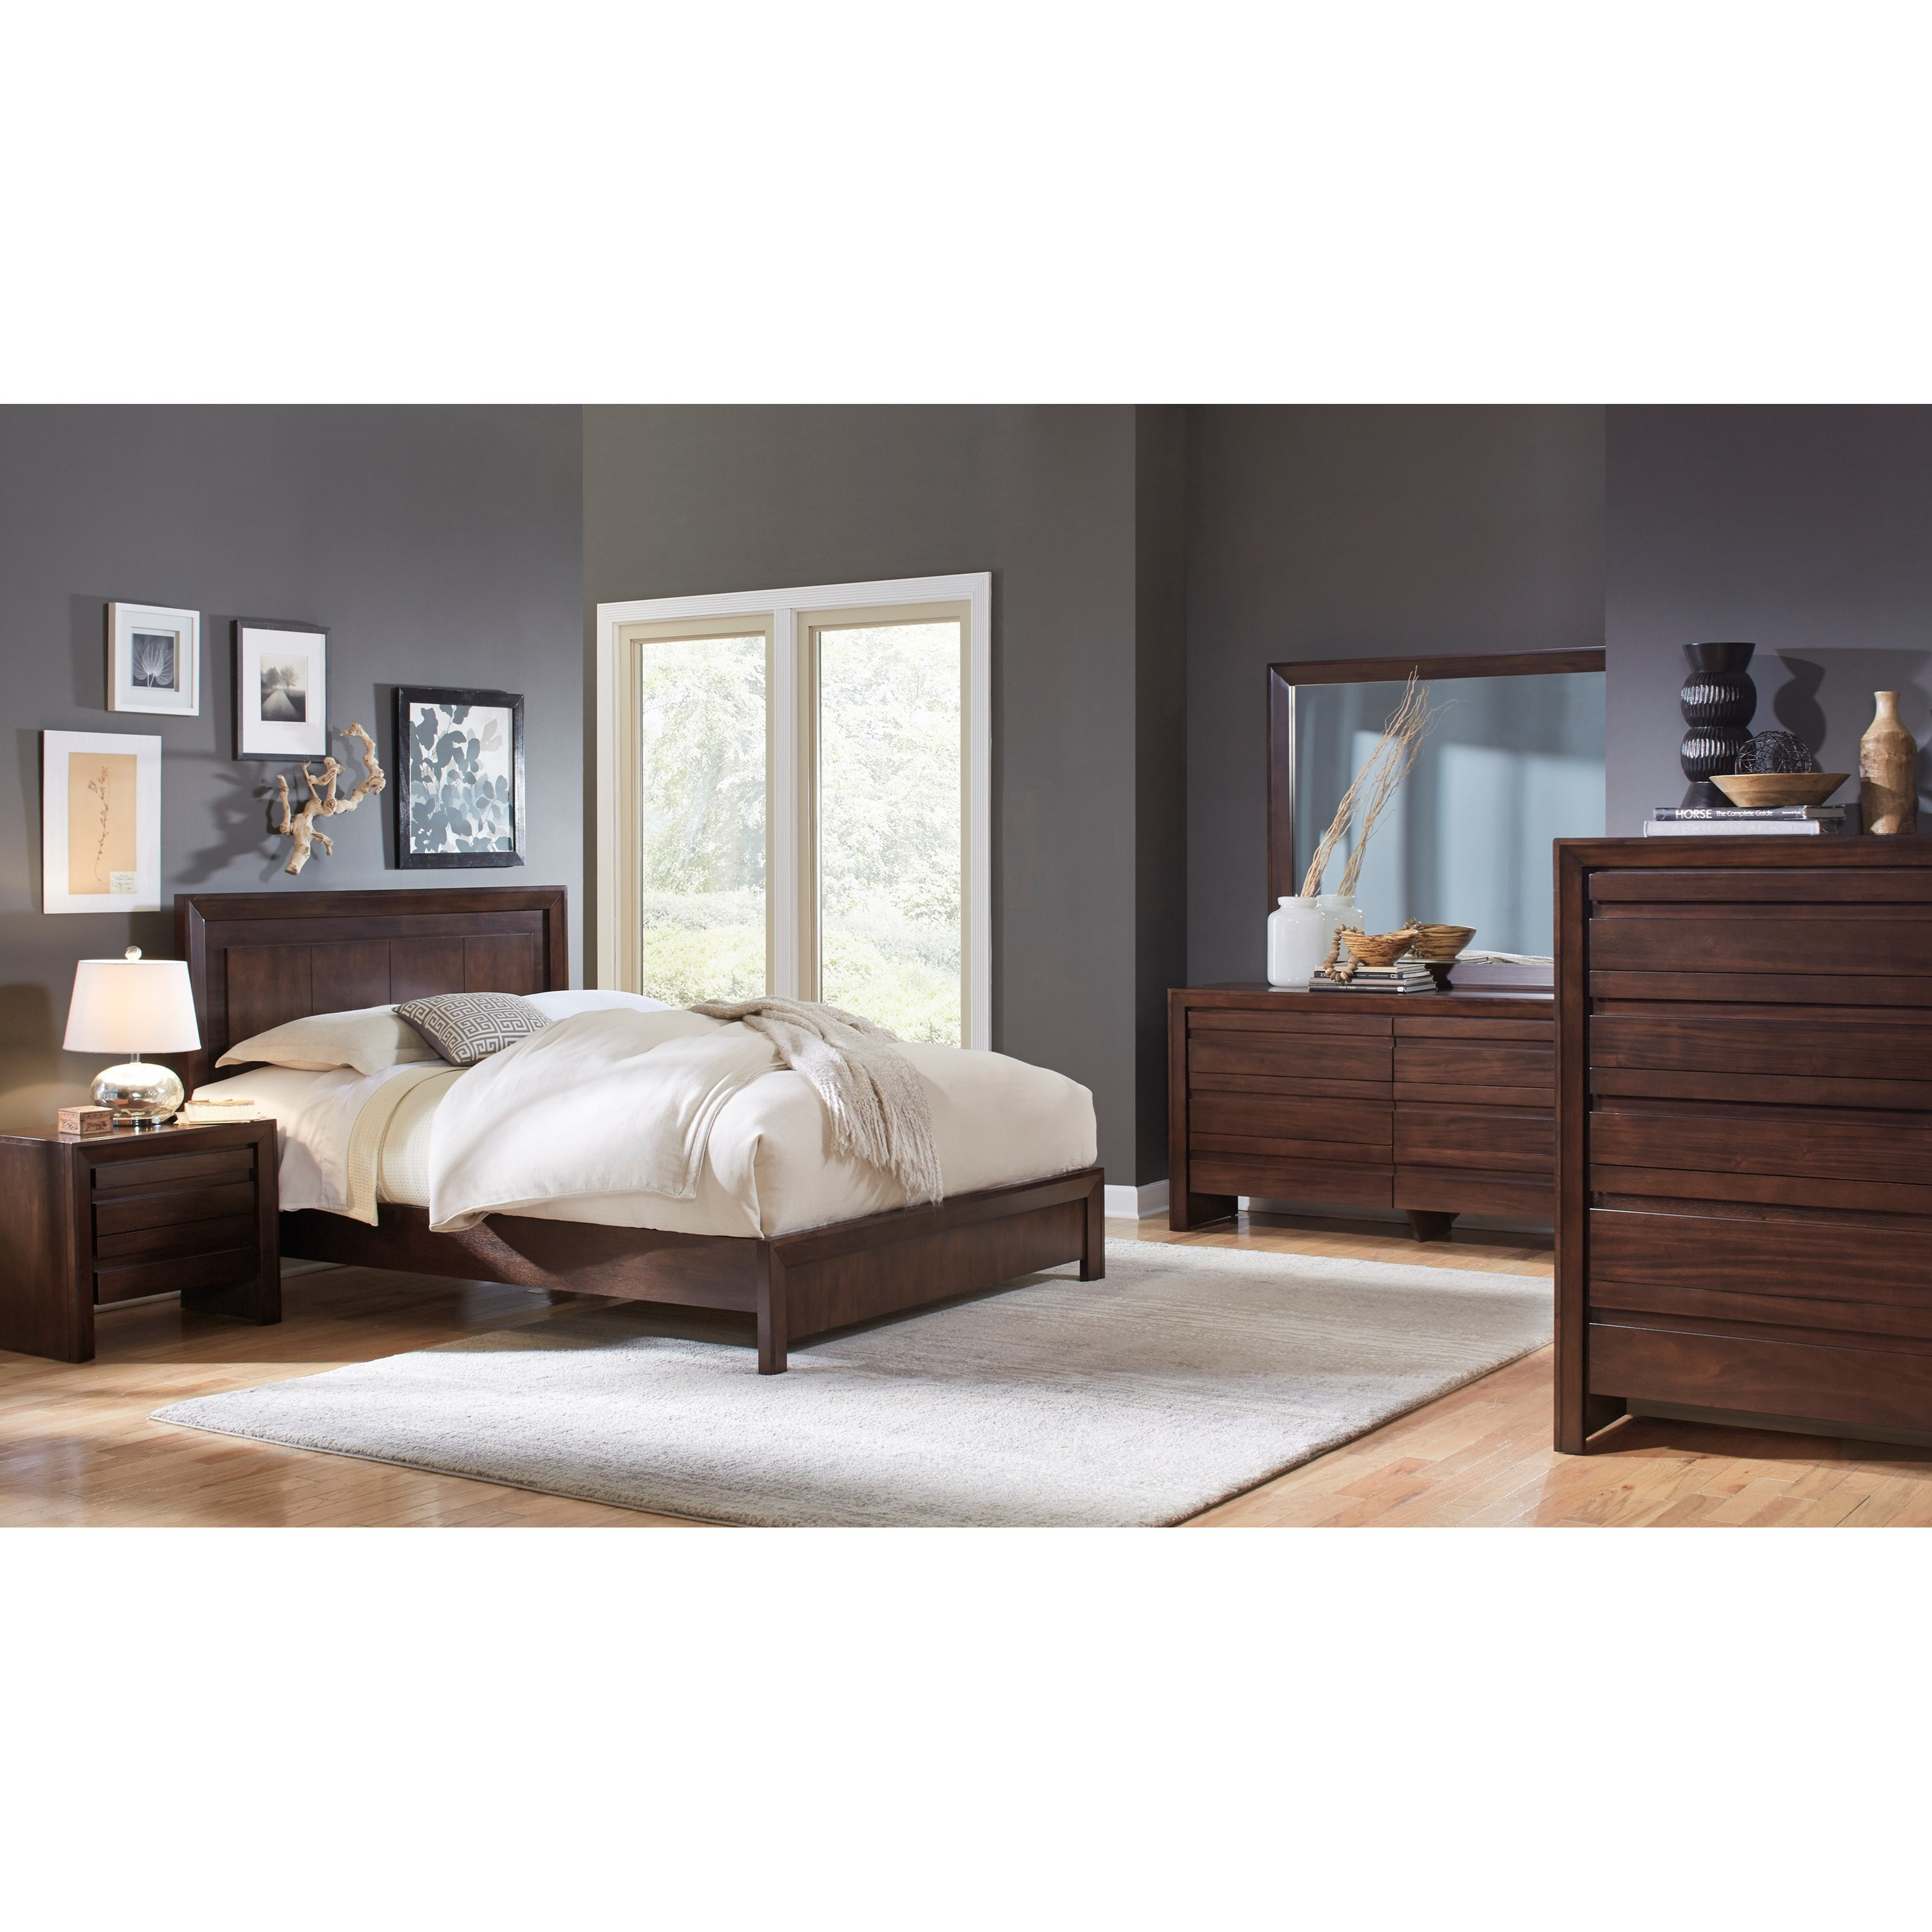 Element California King Bedroom Group by Modus International at A1 Furniture & Mattress